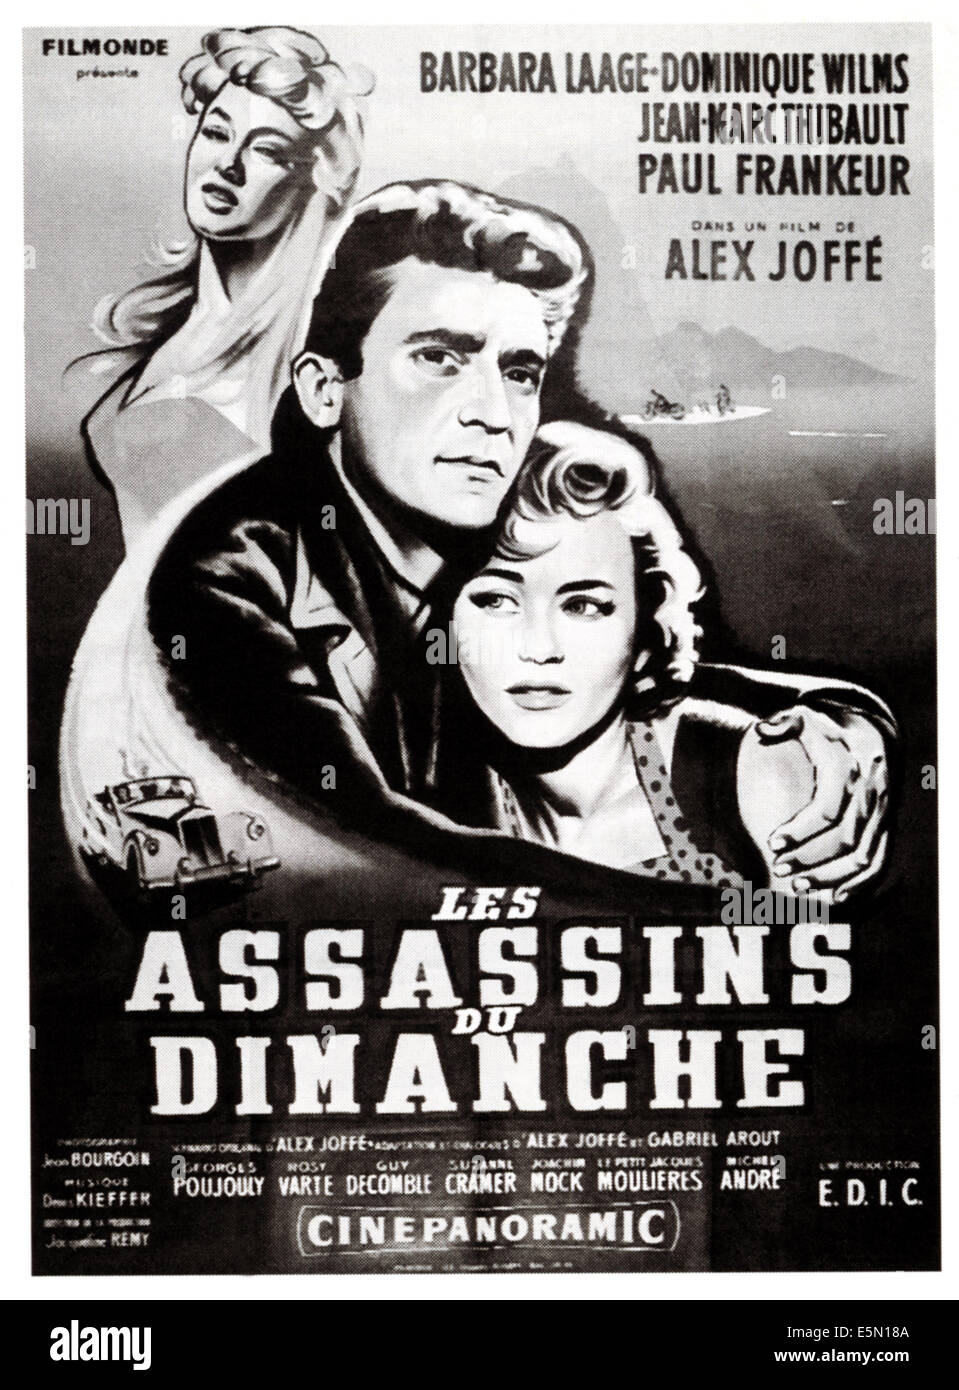 LES ASSASSINS DU DIMANCHE, French poster art, 1956. - Stock Image